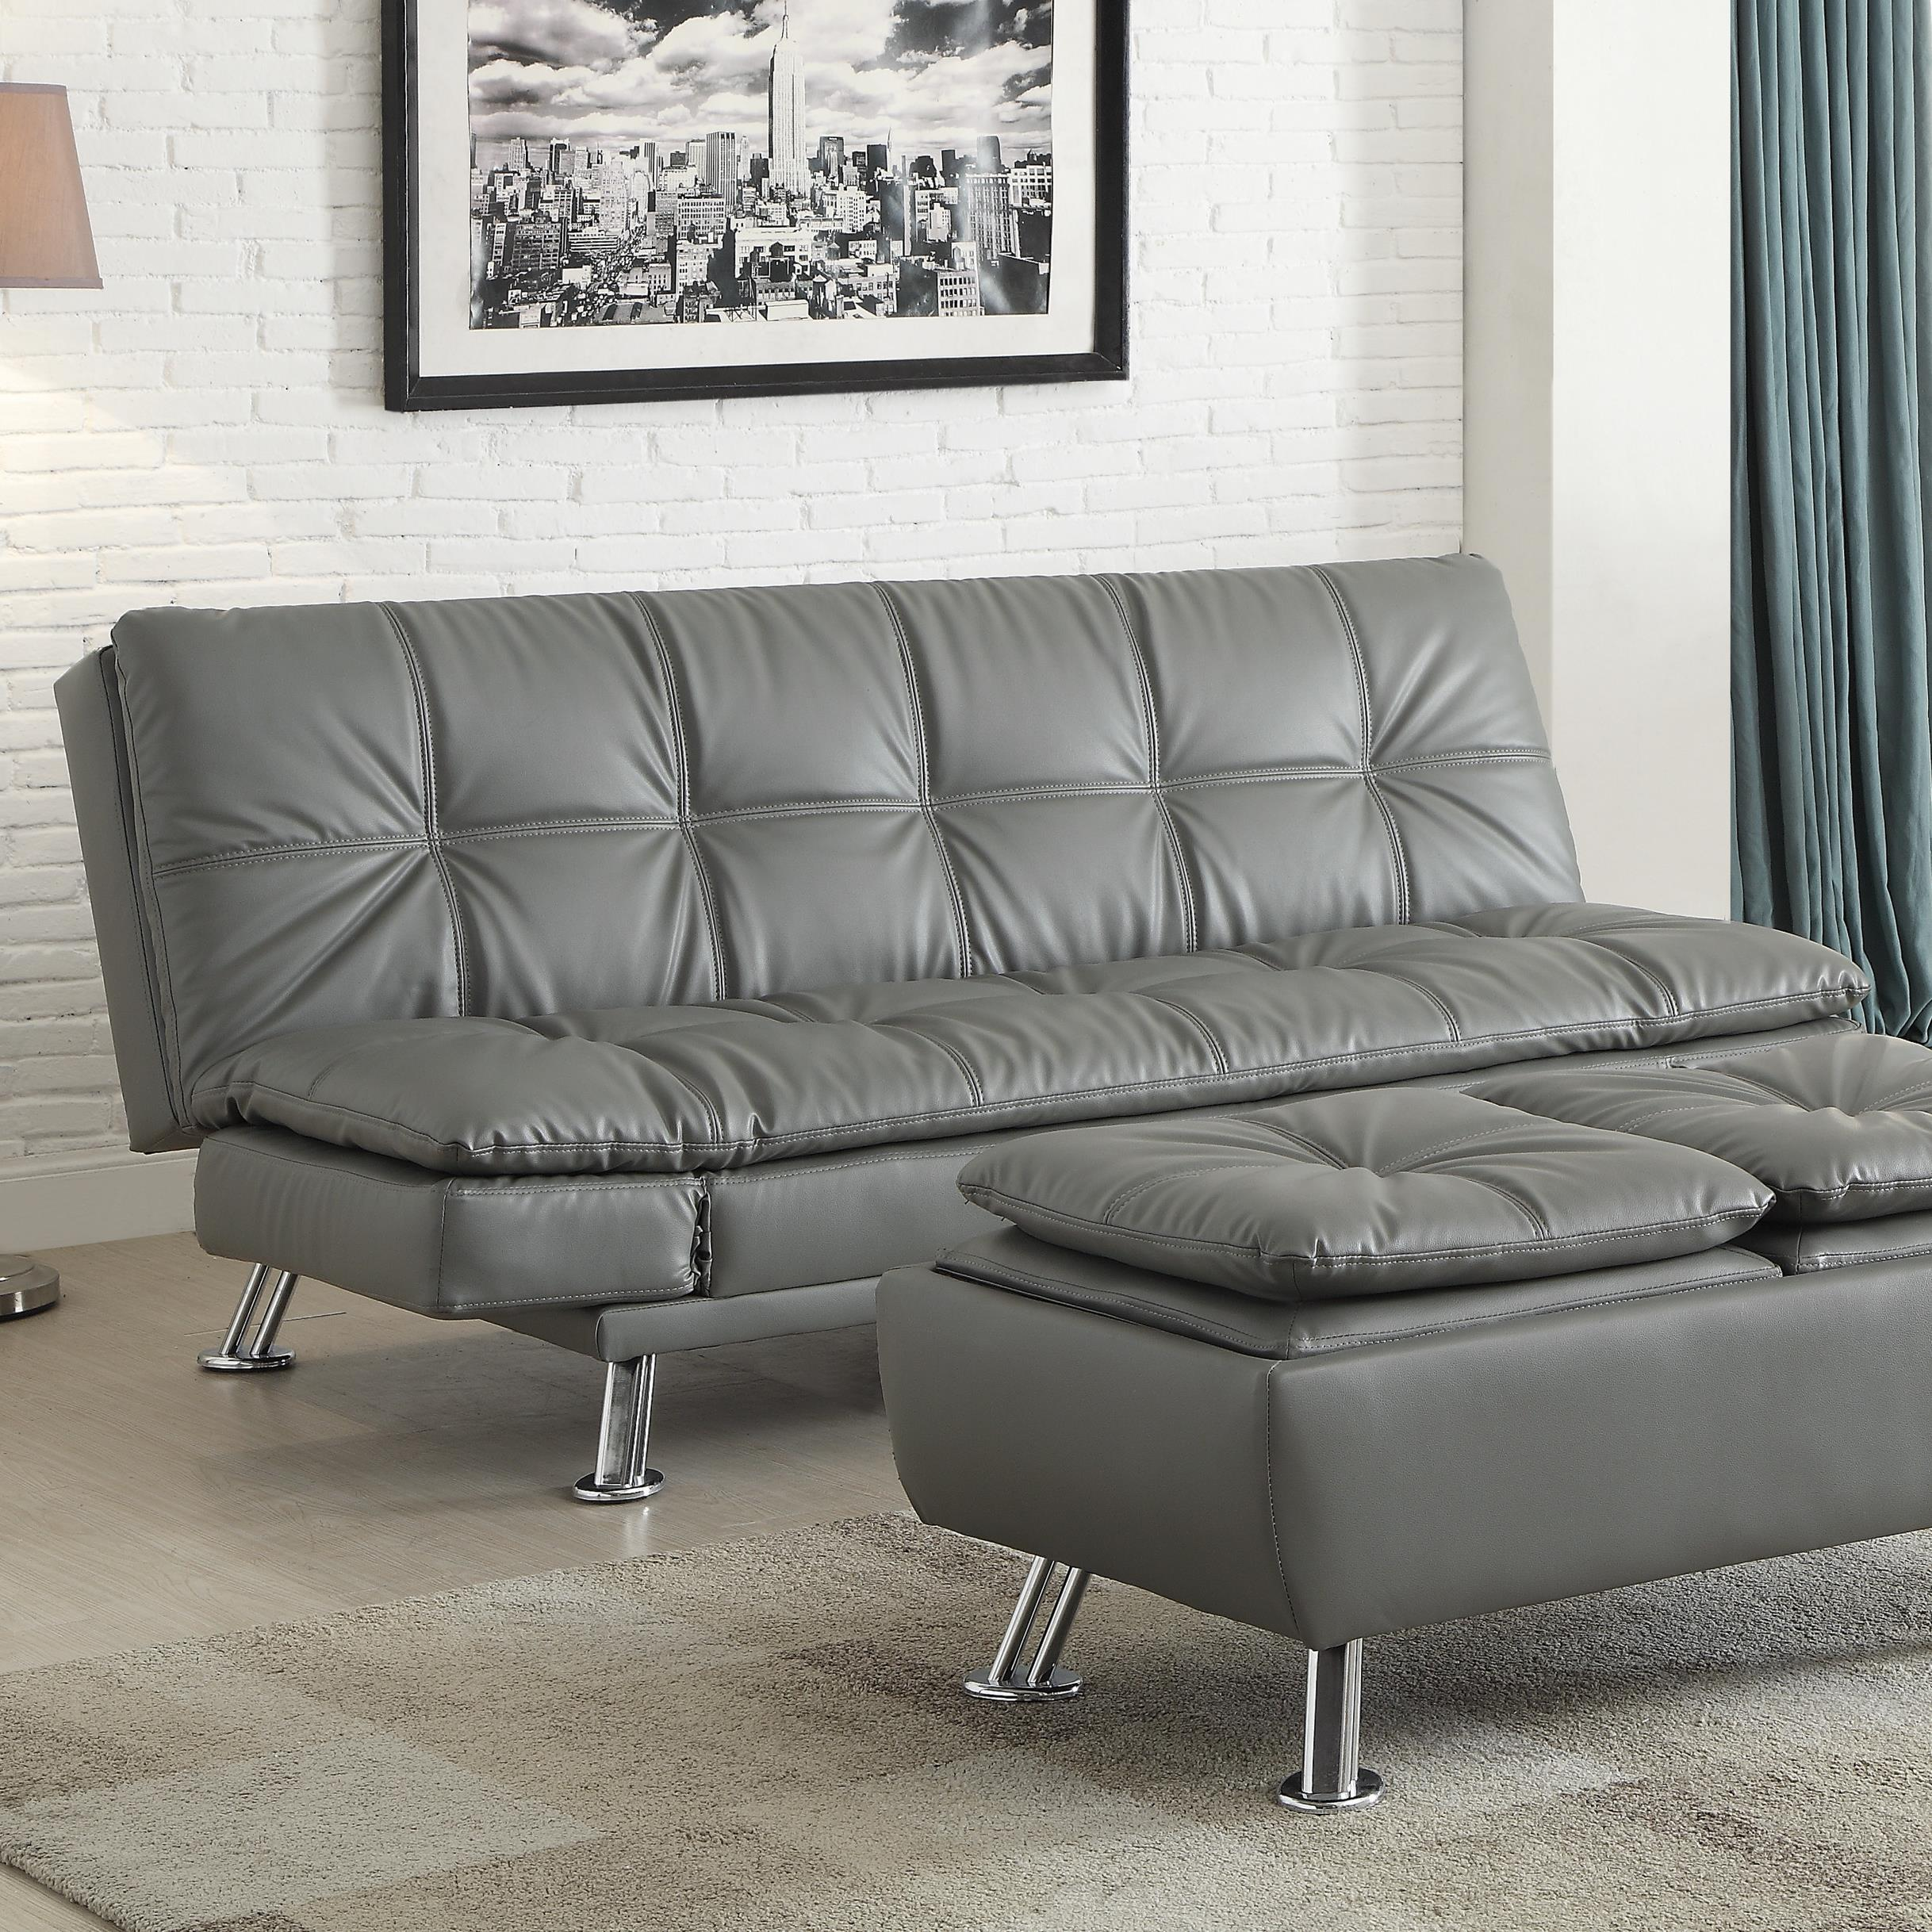 Sofa Bed For Sale In Quezon City: Dilleston Sofa Bed In Futon Style With Chrome Legs